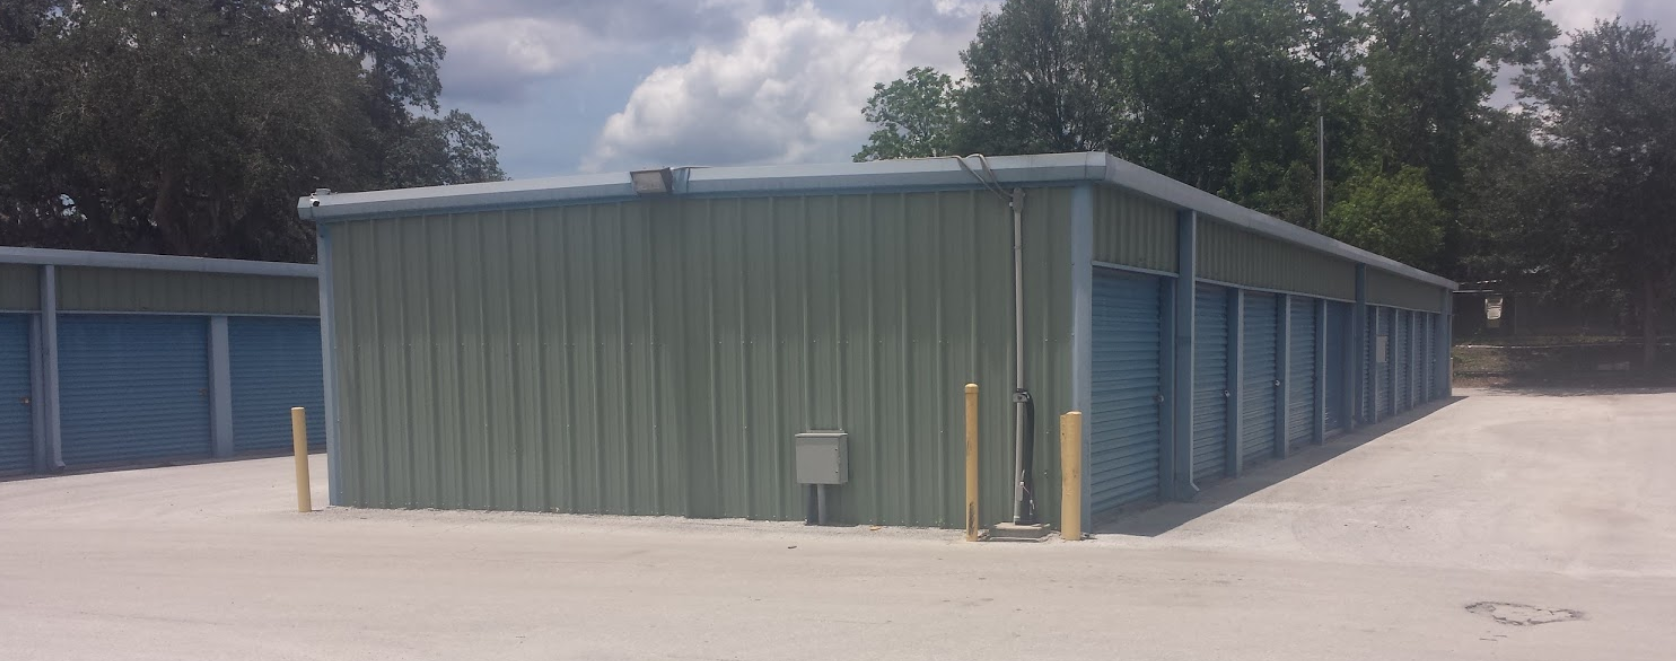 Storage in New Port Richey, FL